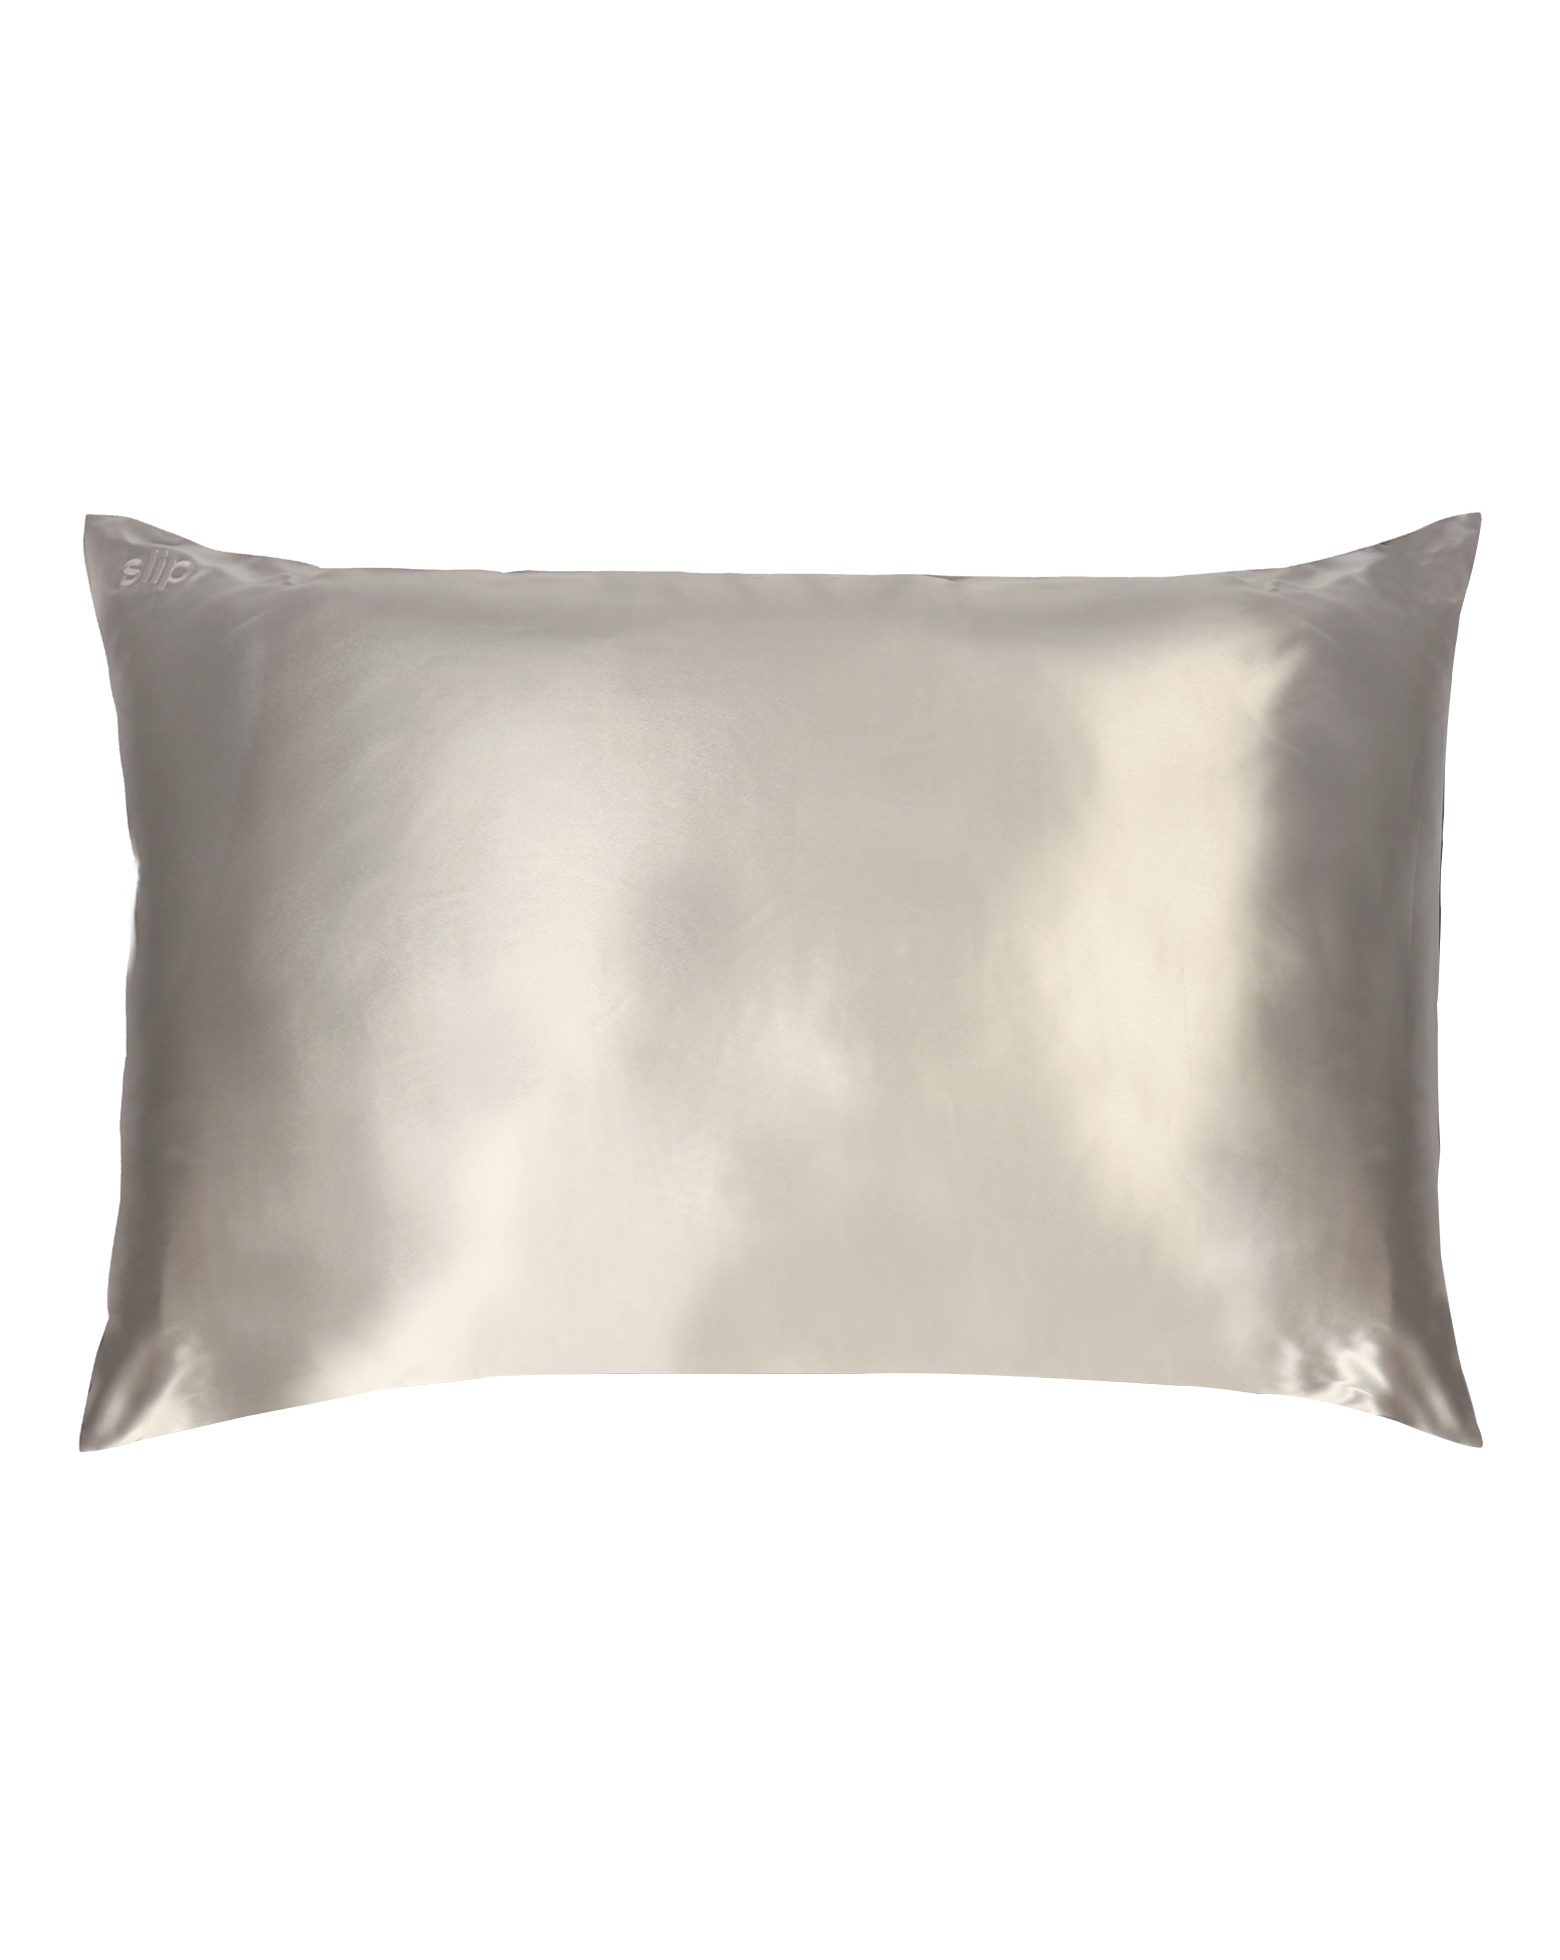 Slip Pillowcase Slip Queen Standard Pillowcase Cult Beauty